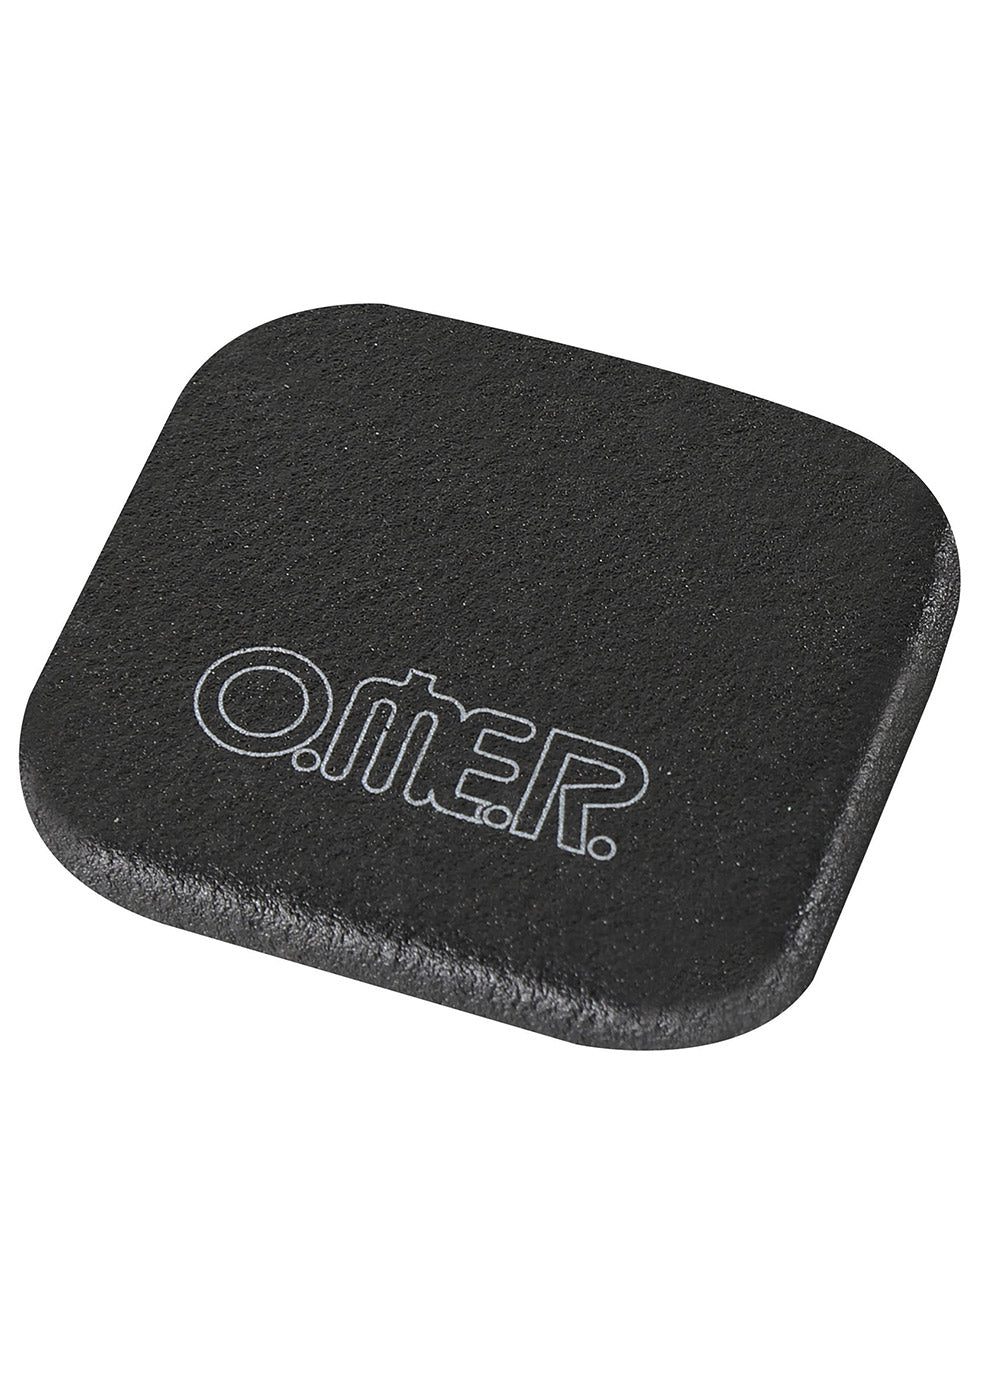 Omer 500g Lead Square Plate